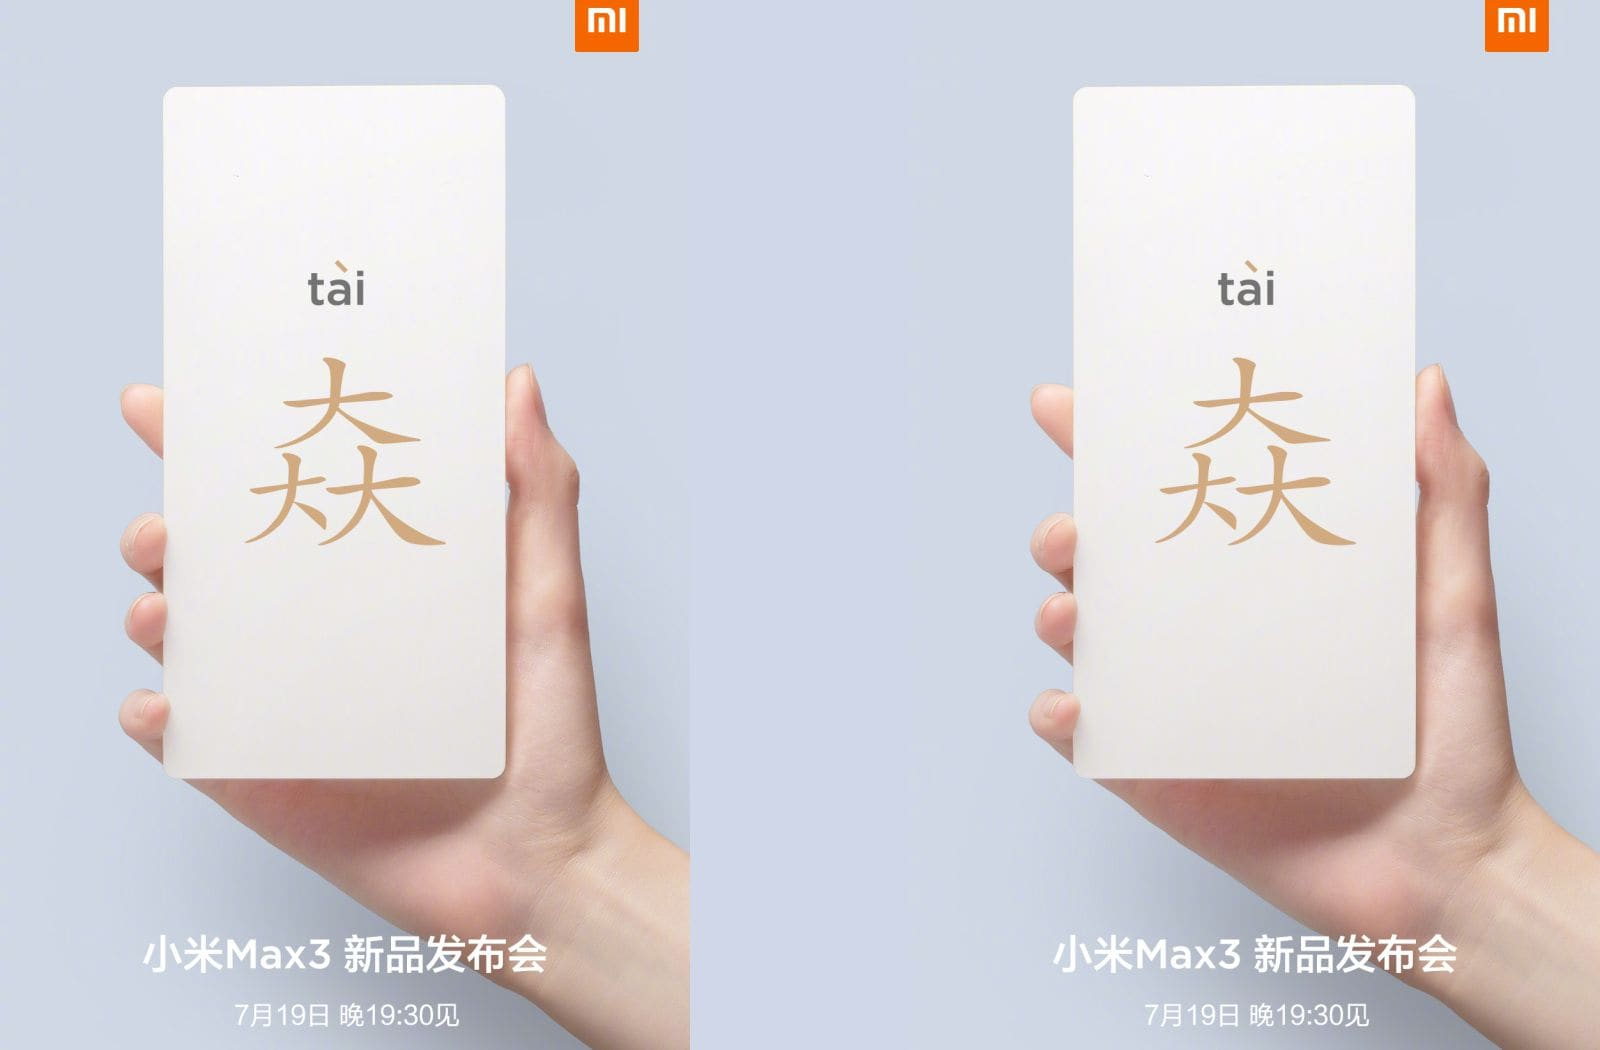 Mi Max 3 to launch on July 19 as Xiaomi sends out official invites